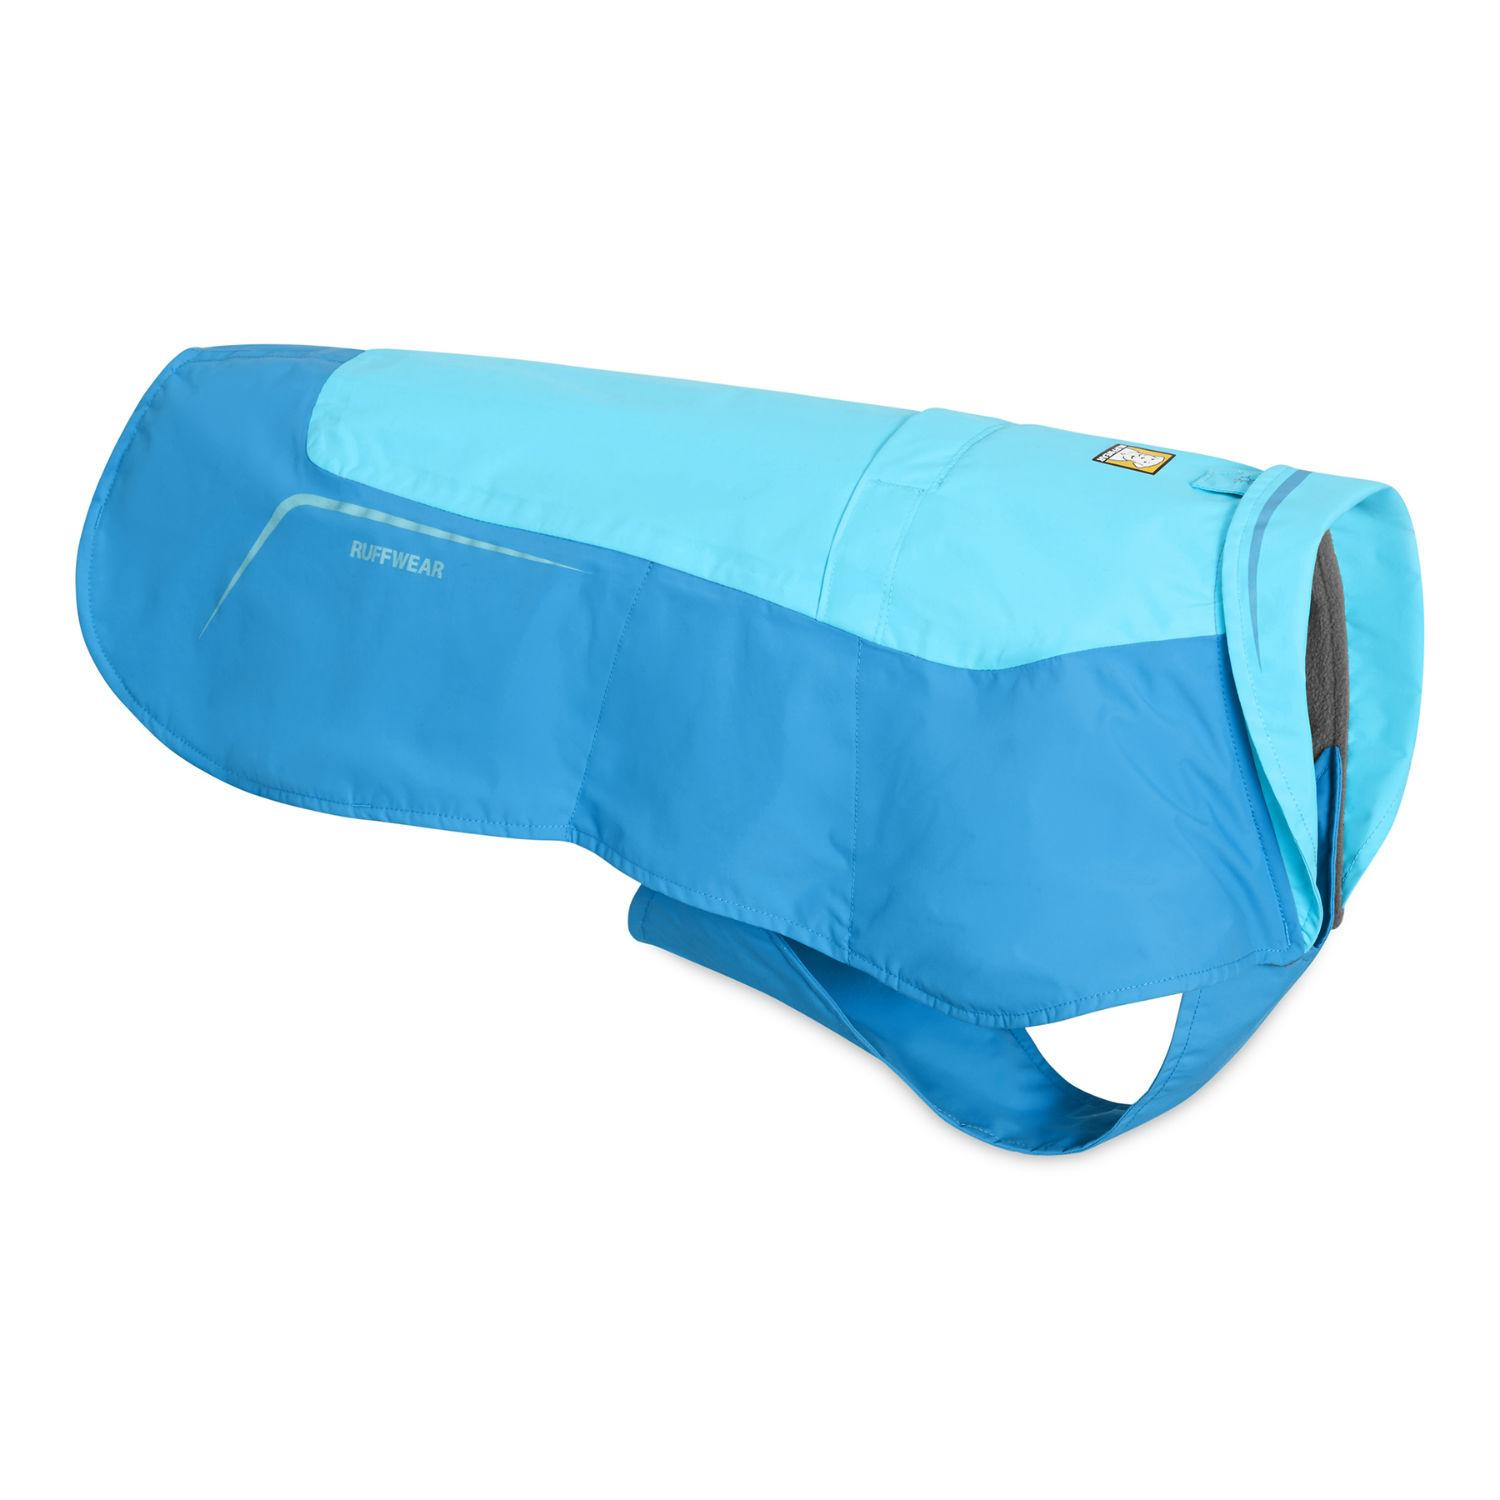 Vert™ Dog Jacket by RuffWear - Blue Atoll